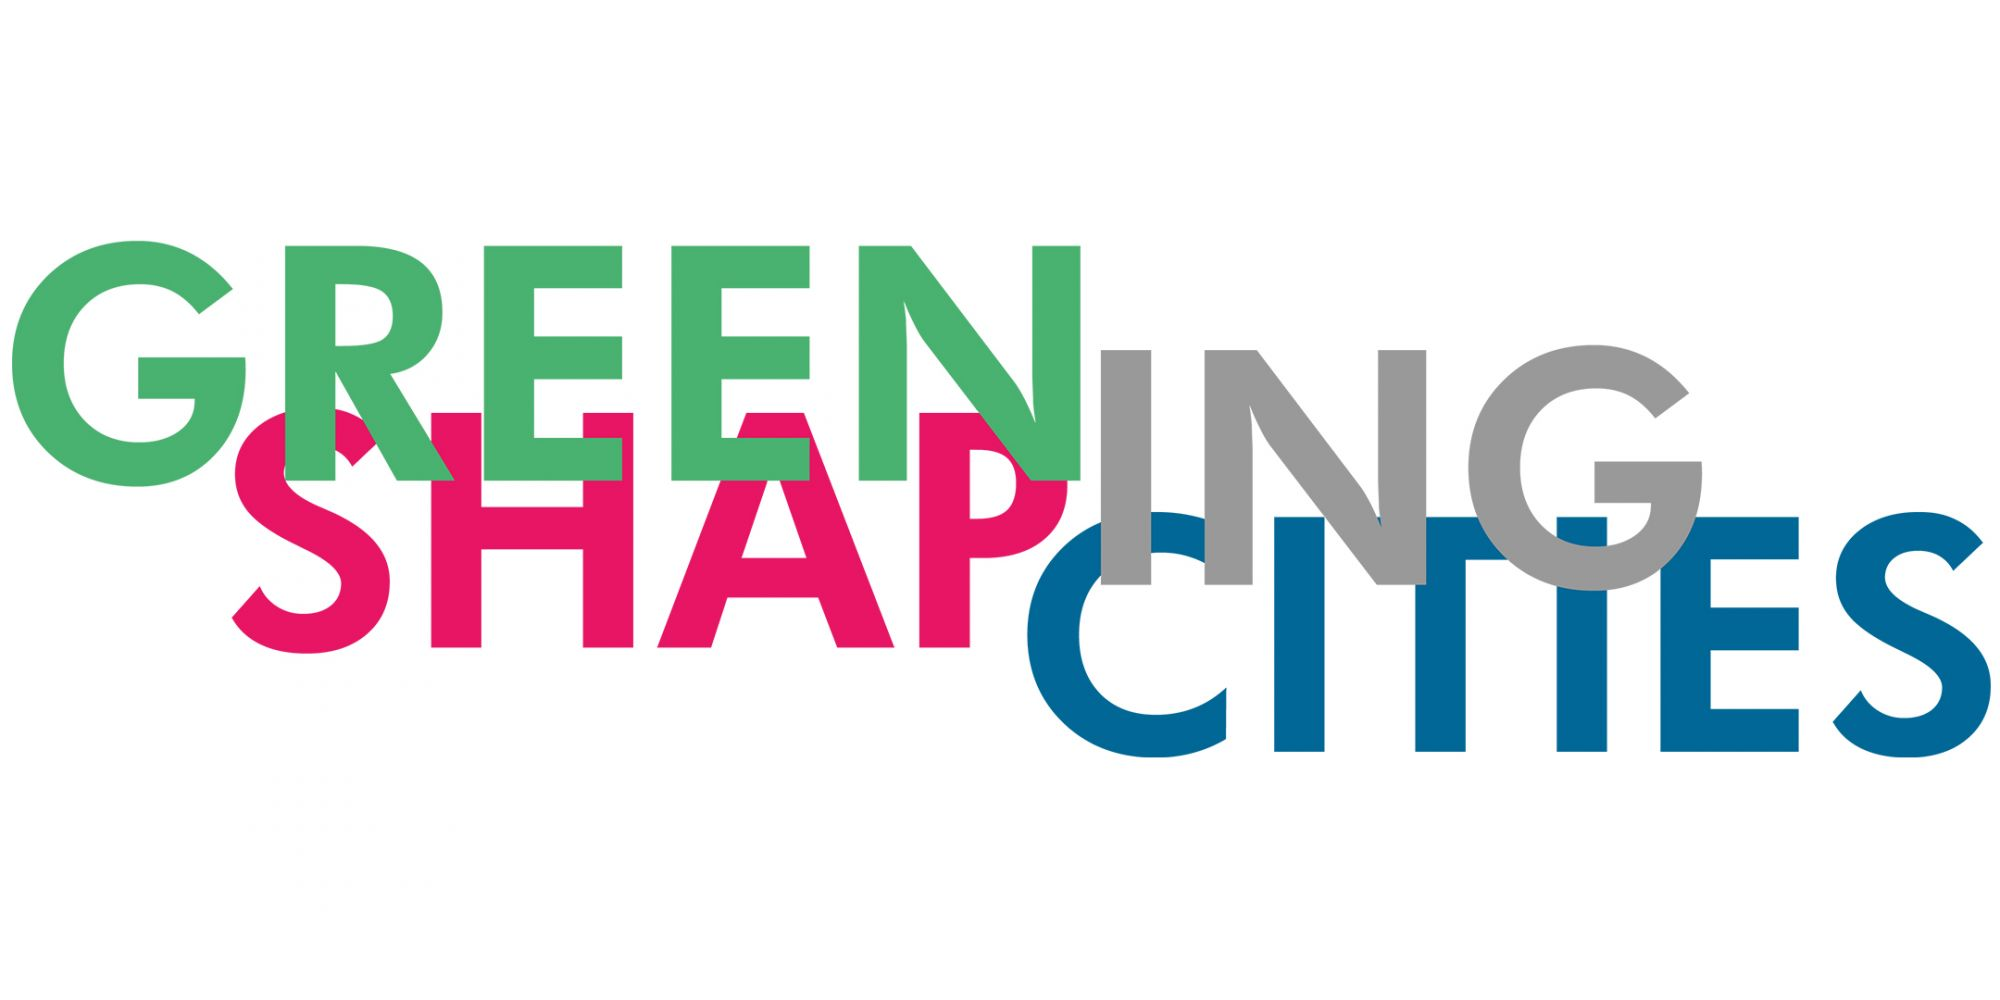 Greening Cities, Shaping Cities